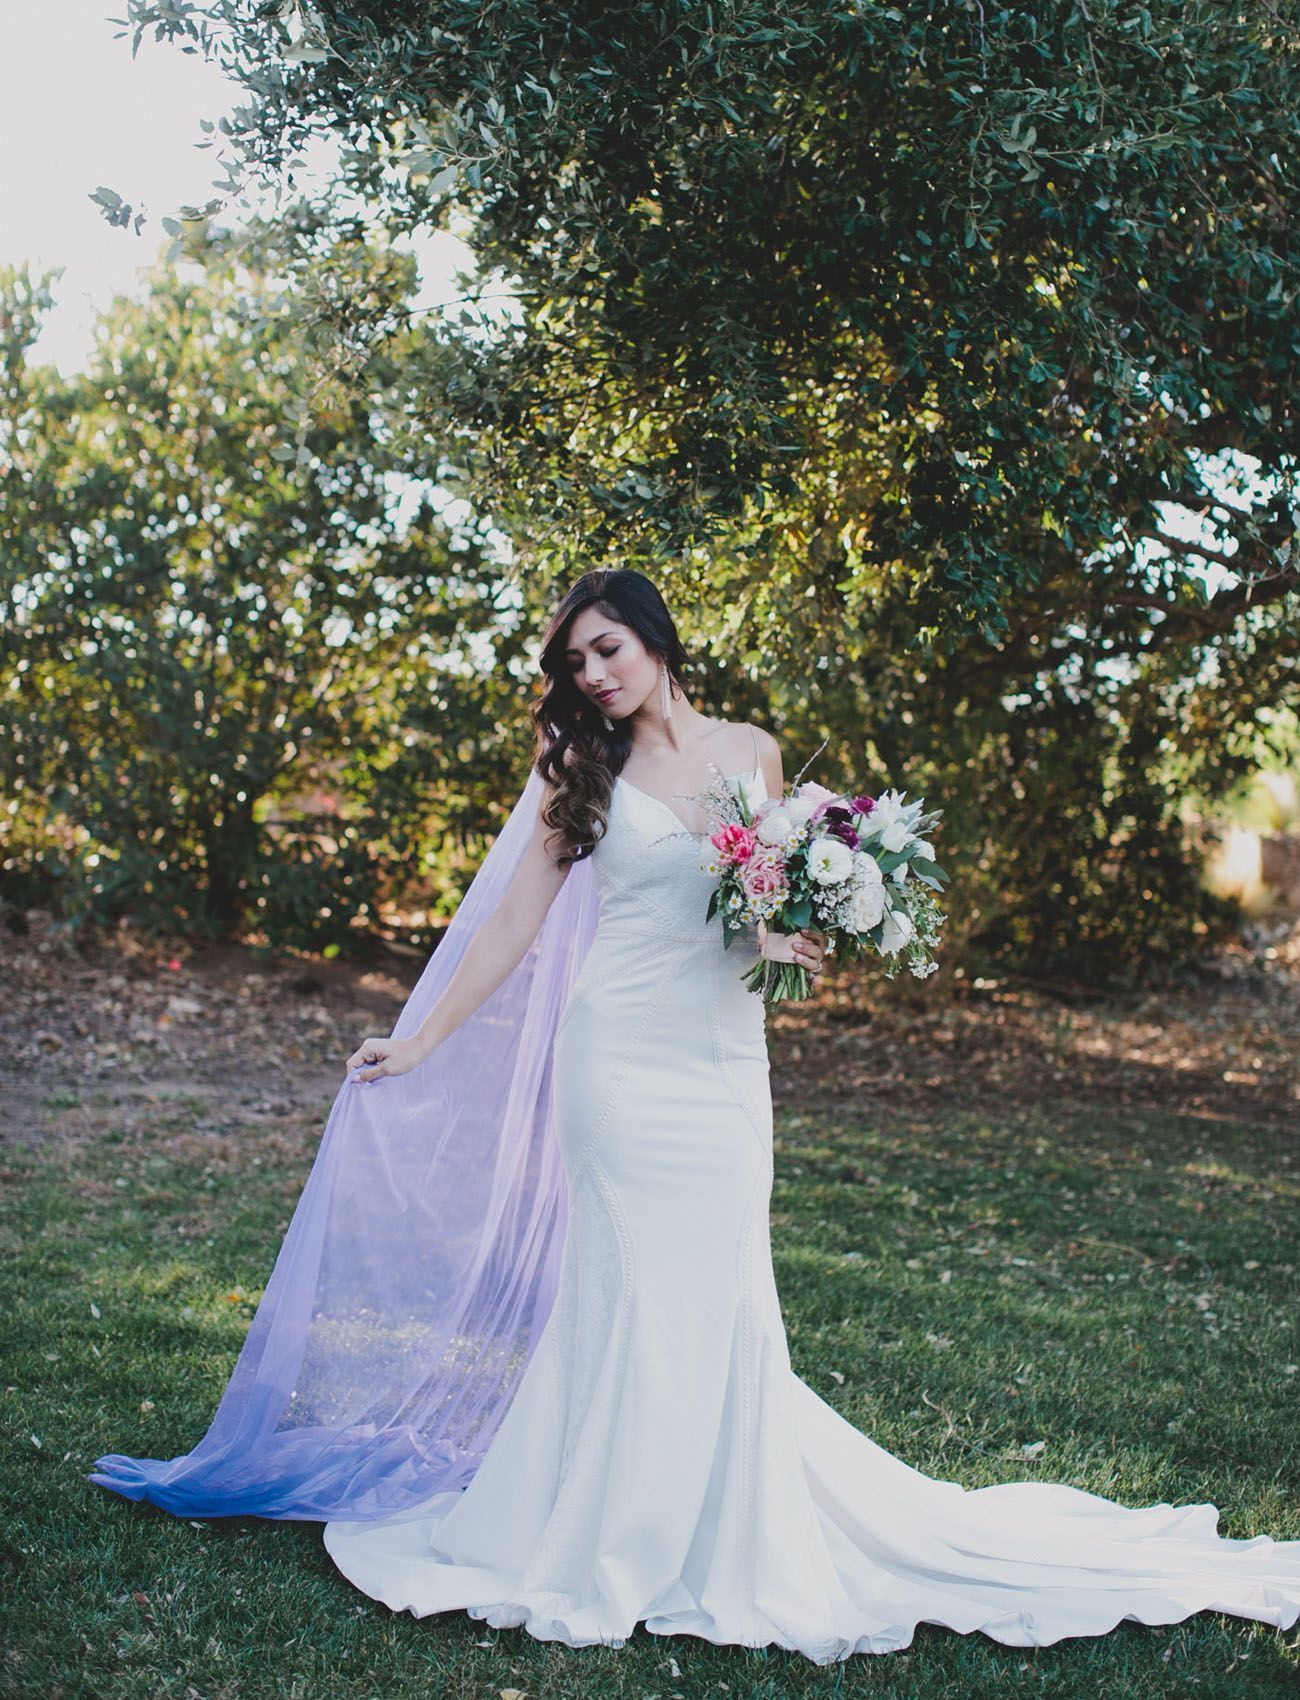 Diy Your Own Ultra Violet Veil Rental Wedding Dresses Diy